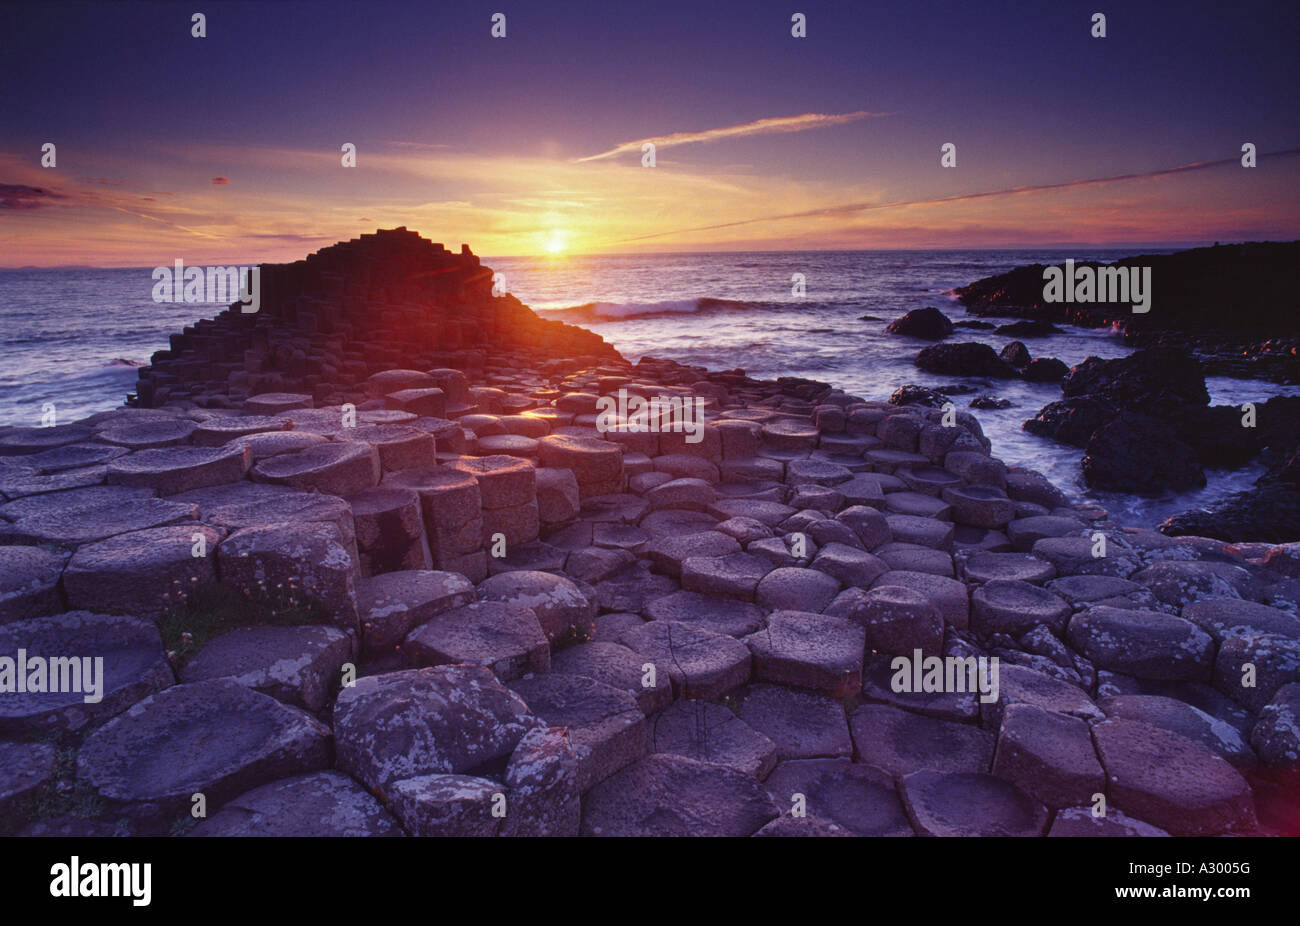 Midsummers day sunset at the Giants Causeway, Co Antrim, Northern Ireland. - Stock Image